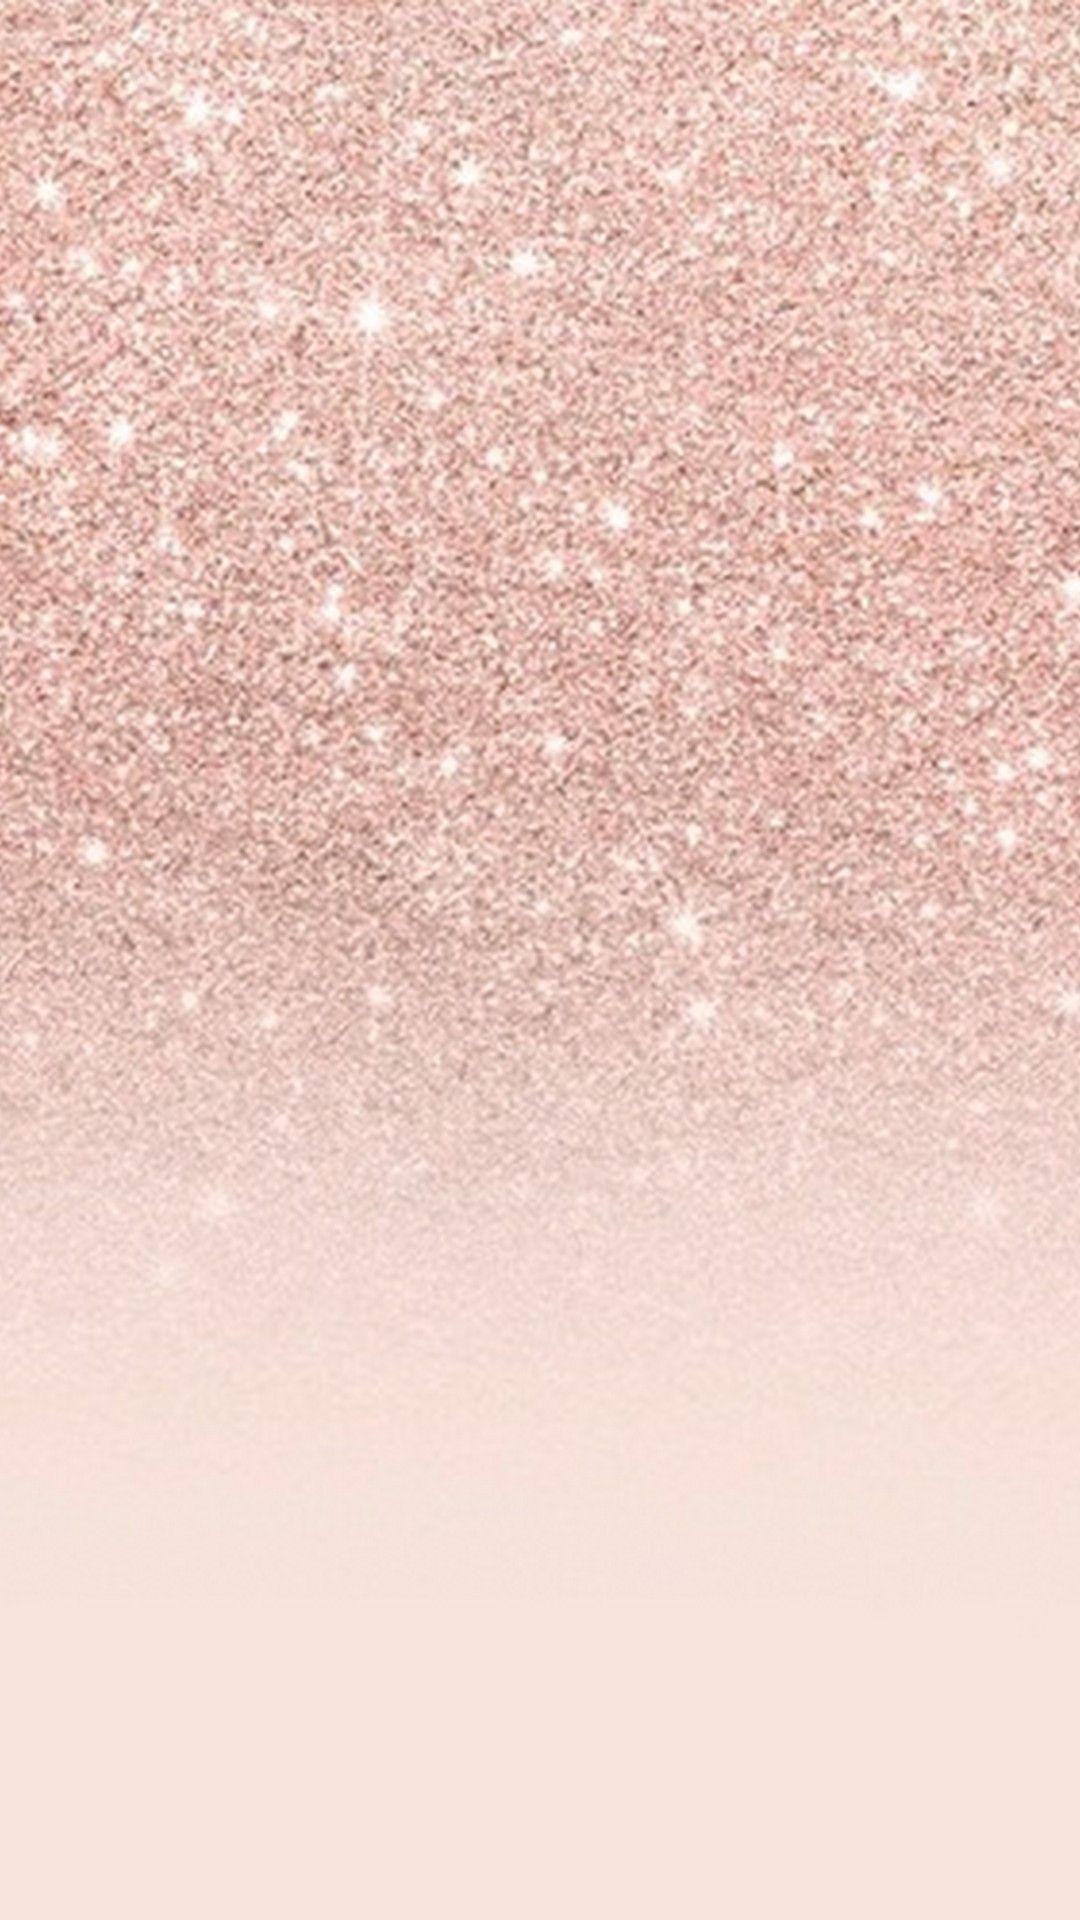 Rose Gold Ombre Wallpapers - Top Free Rose Gold Ombre ...